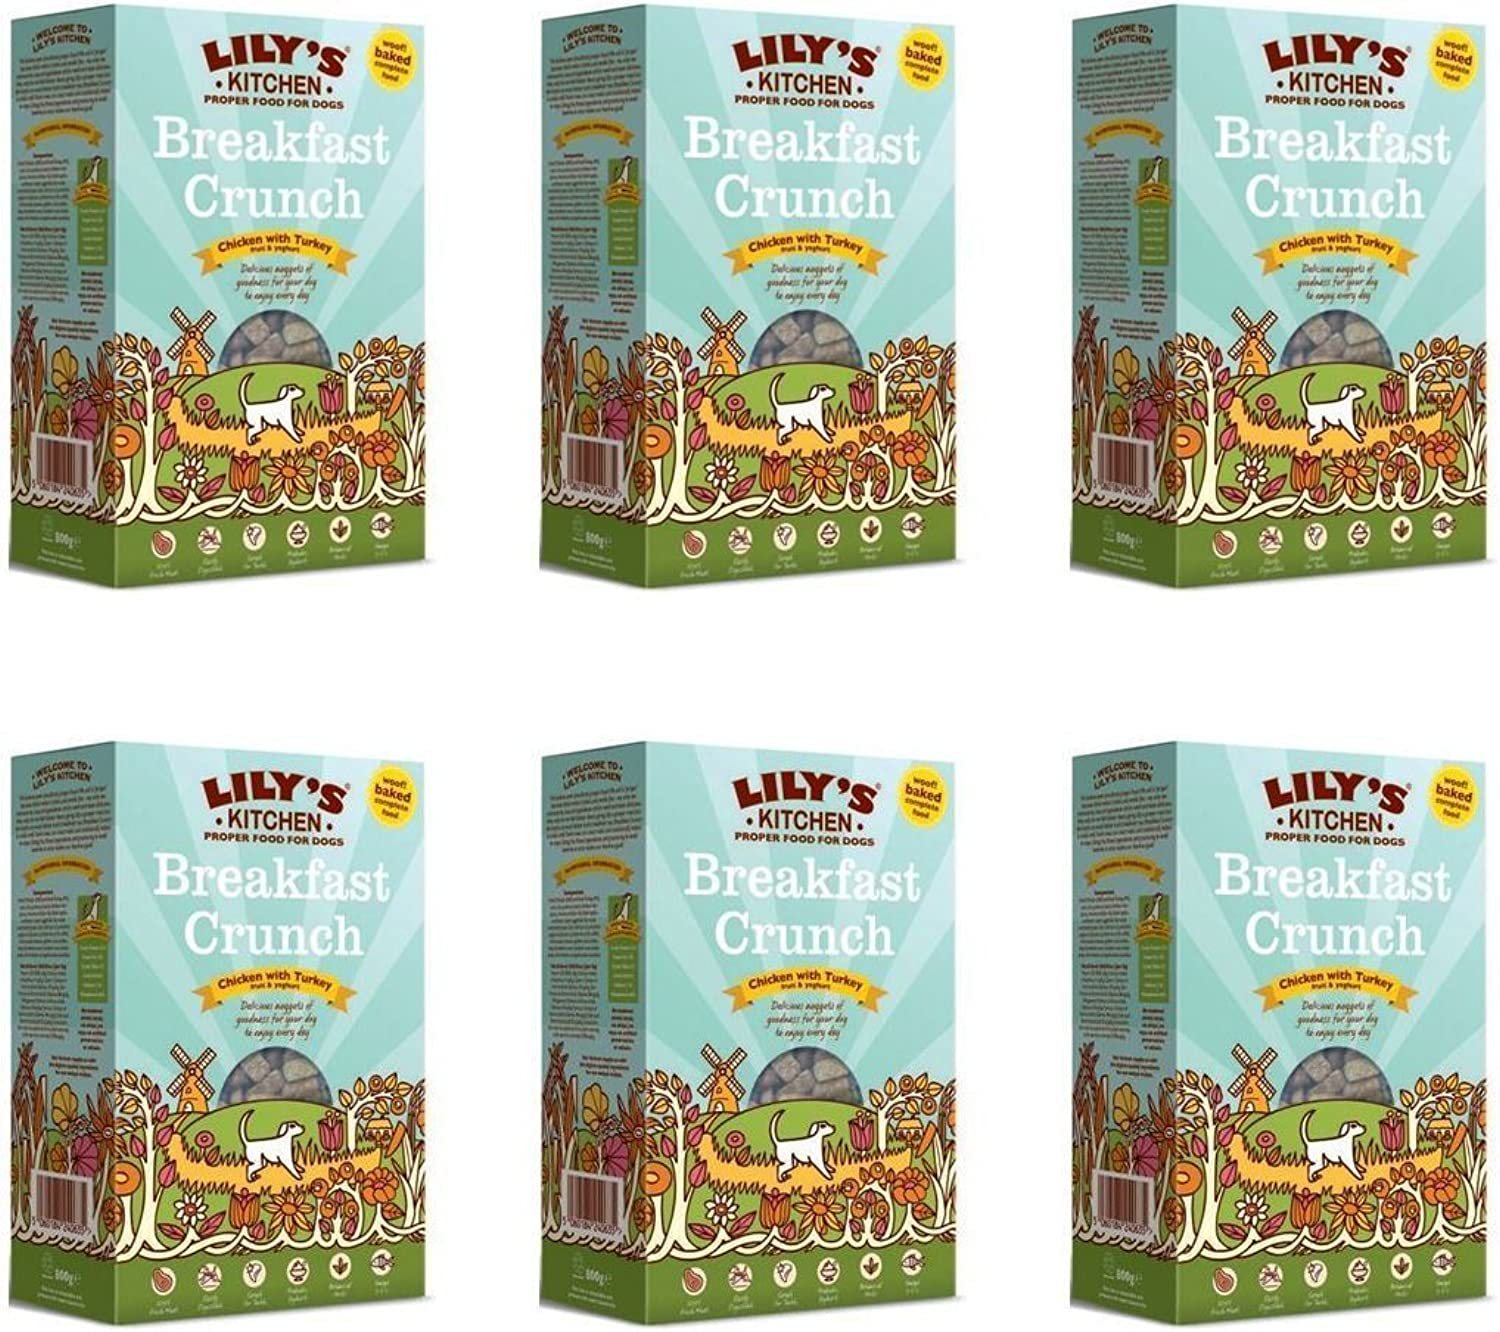 (6 PACK)  Lilys K Breakfast Crunch For Dogs   800g   6 PACK  SUPER SAVER  SAVE MONEY